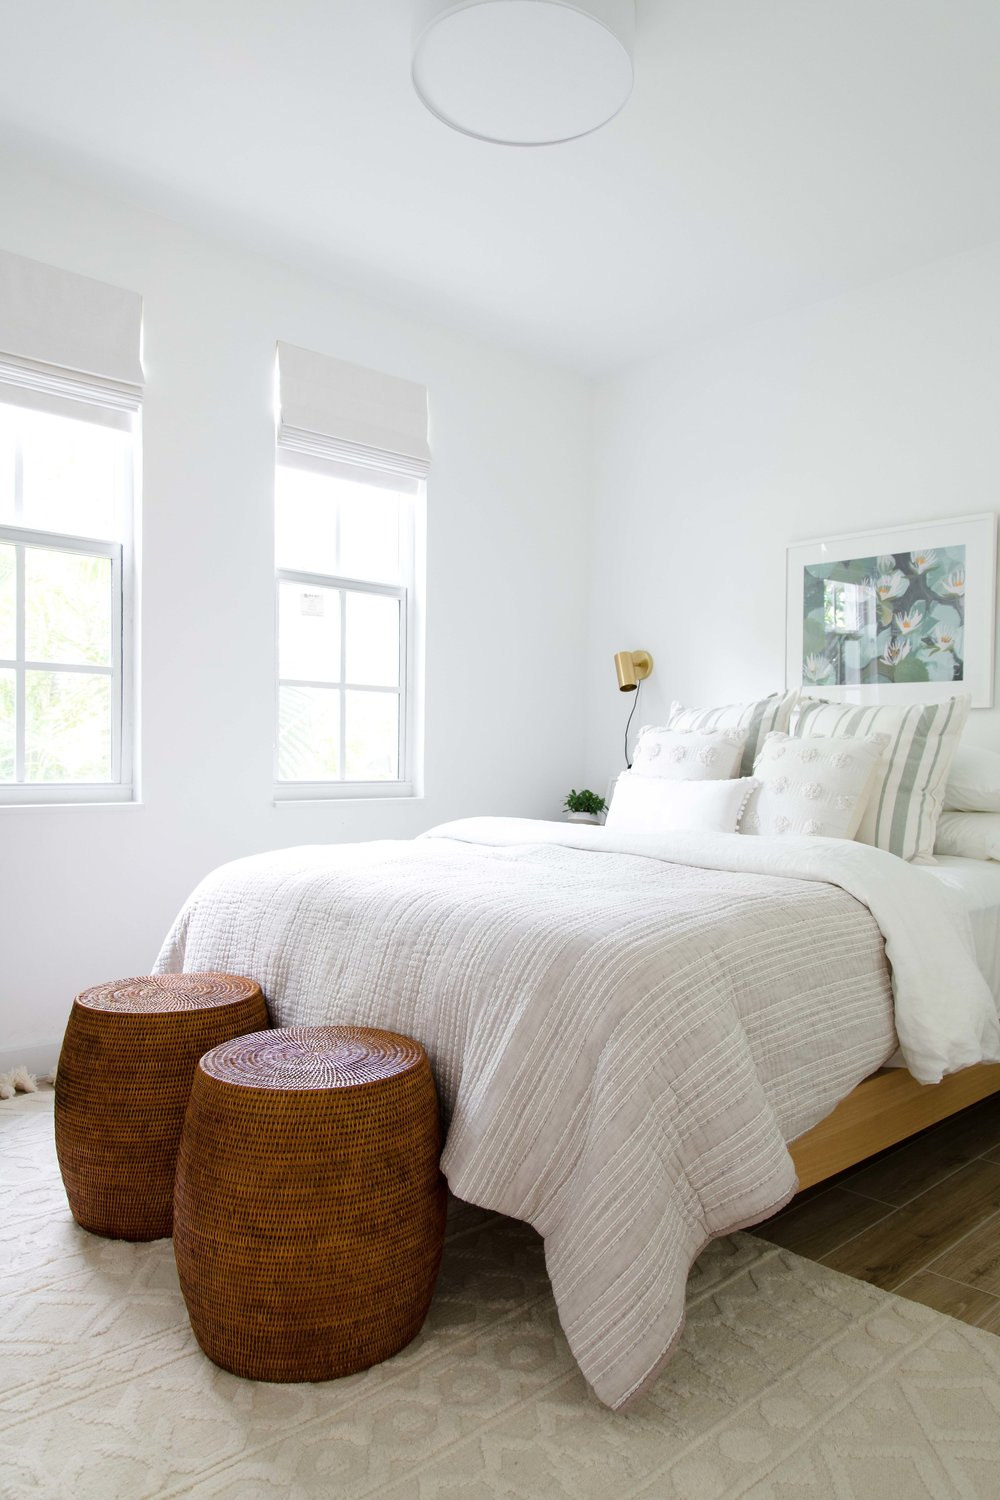 bright and airy guest bedroom - the habitat collective interior design - #projectpeachy